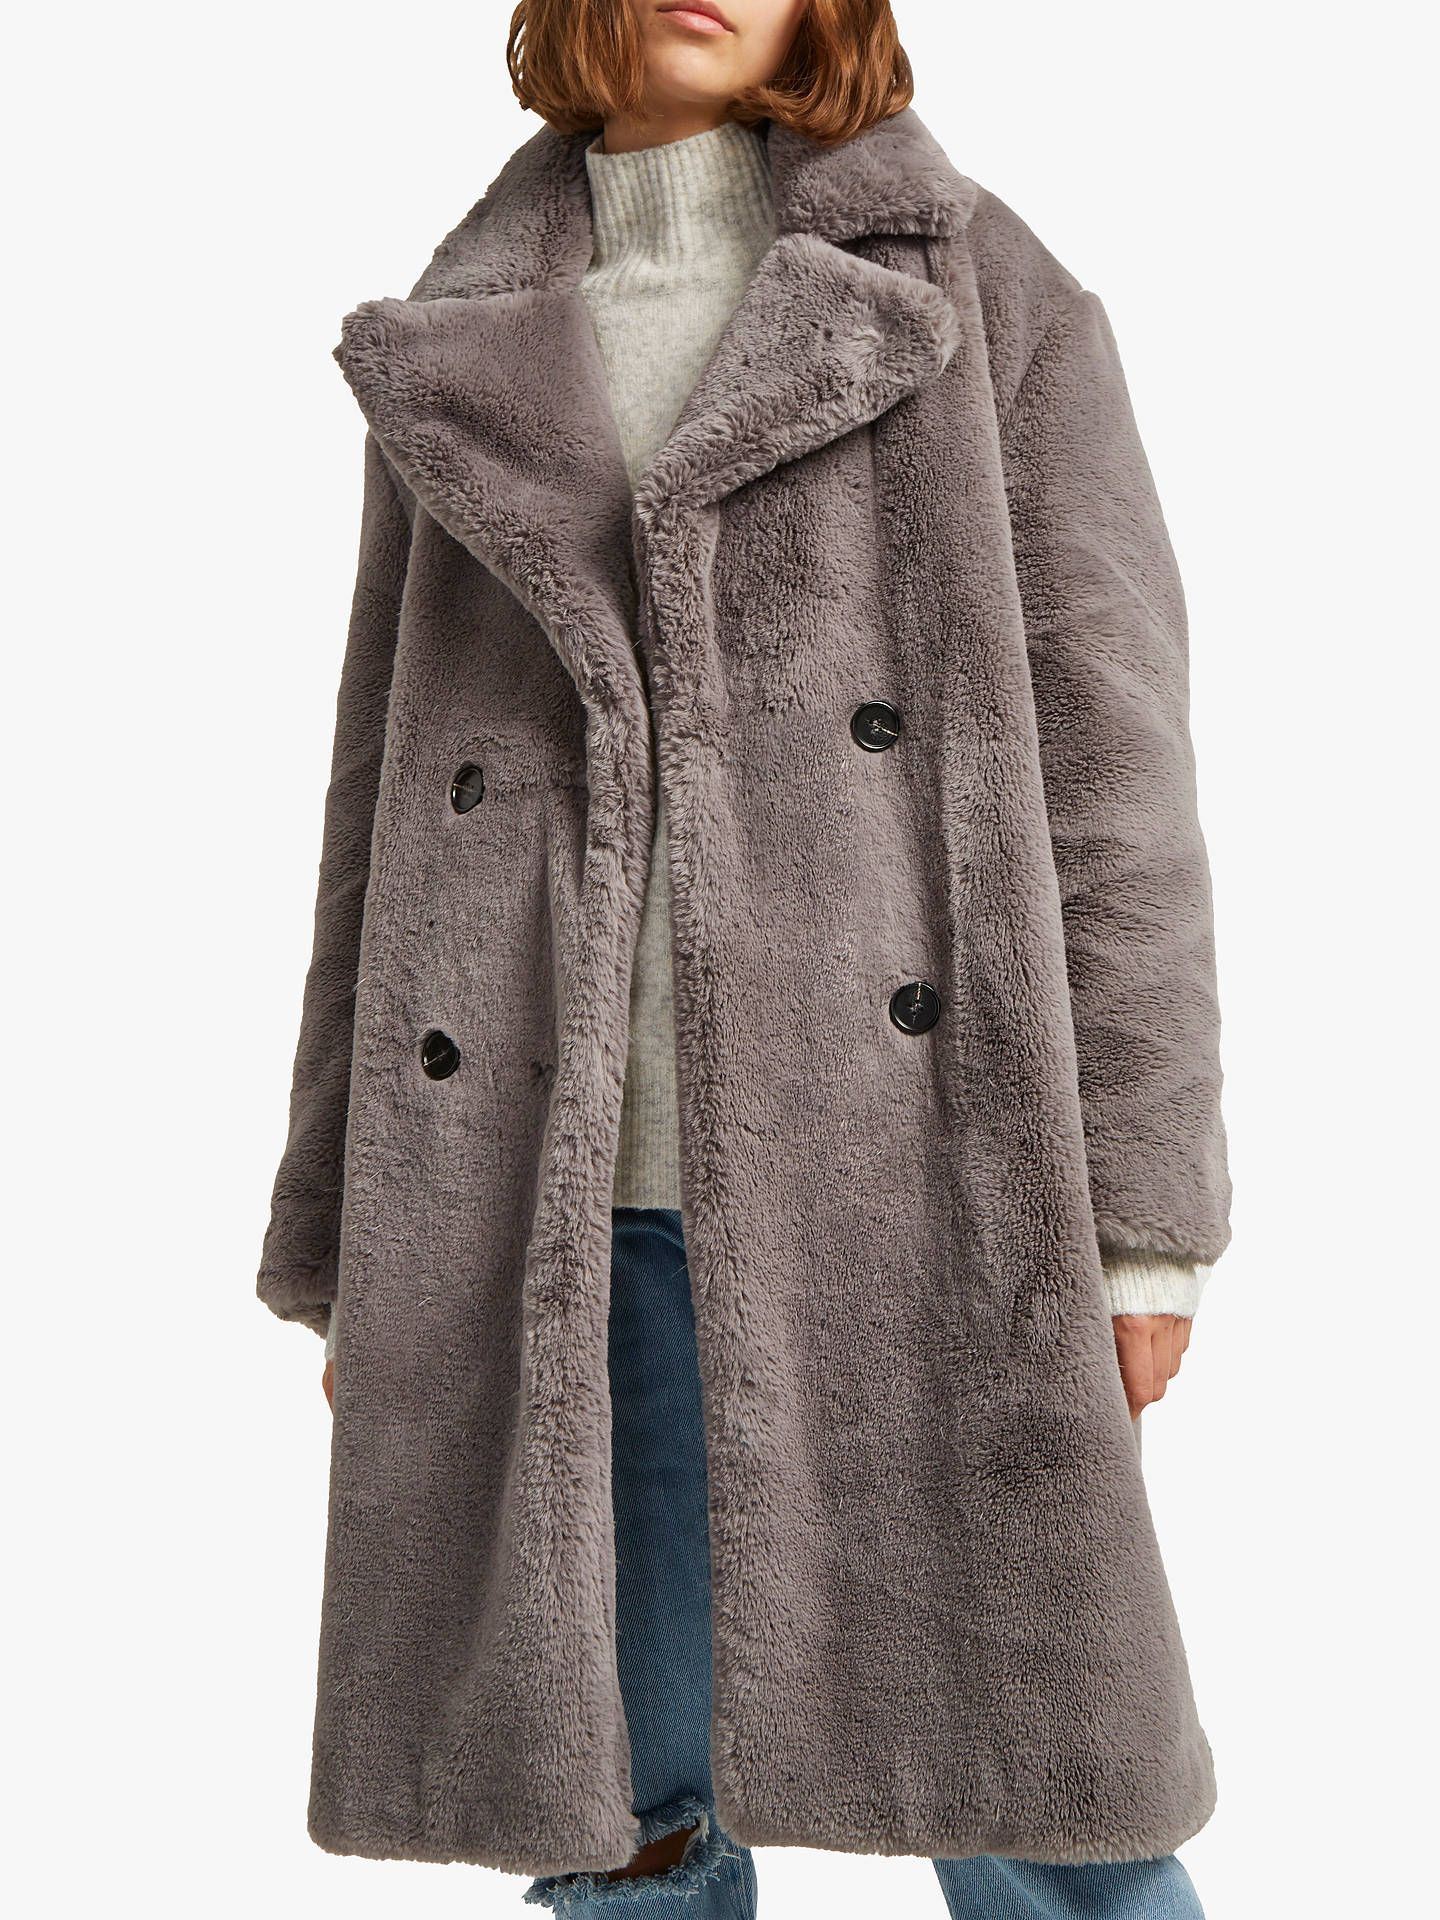 9b76d60fec Buy French Connection Annie Faux Fur Coat, Moody Grey, M Online at  johnlewis.